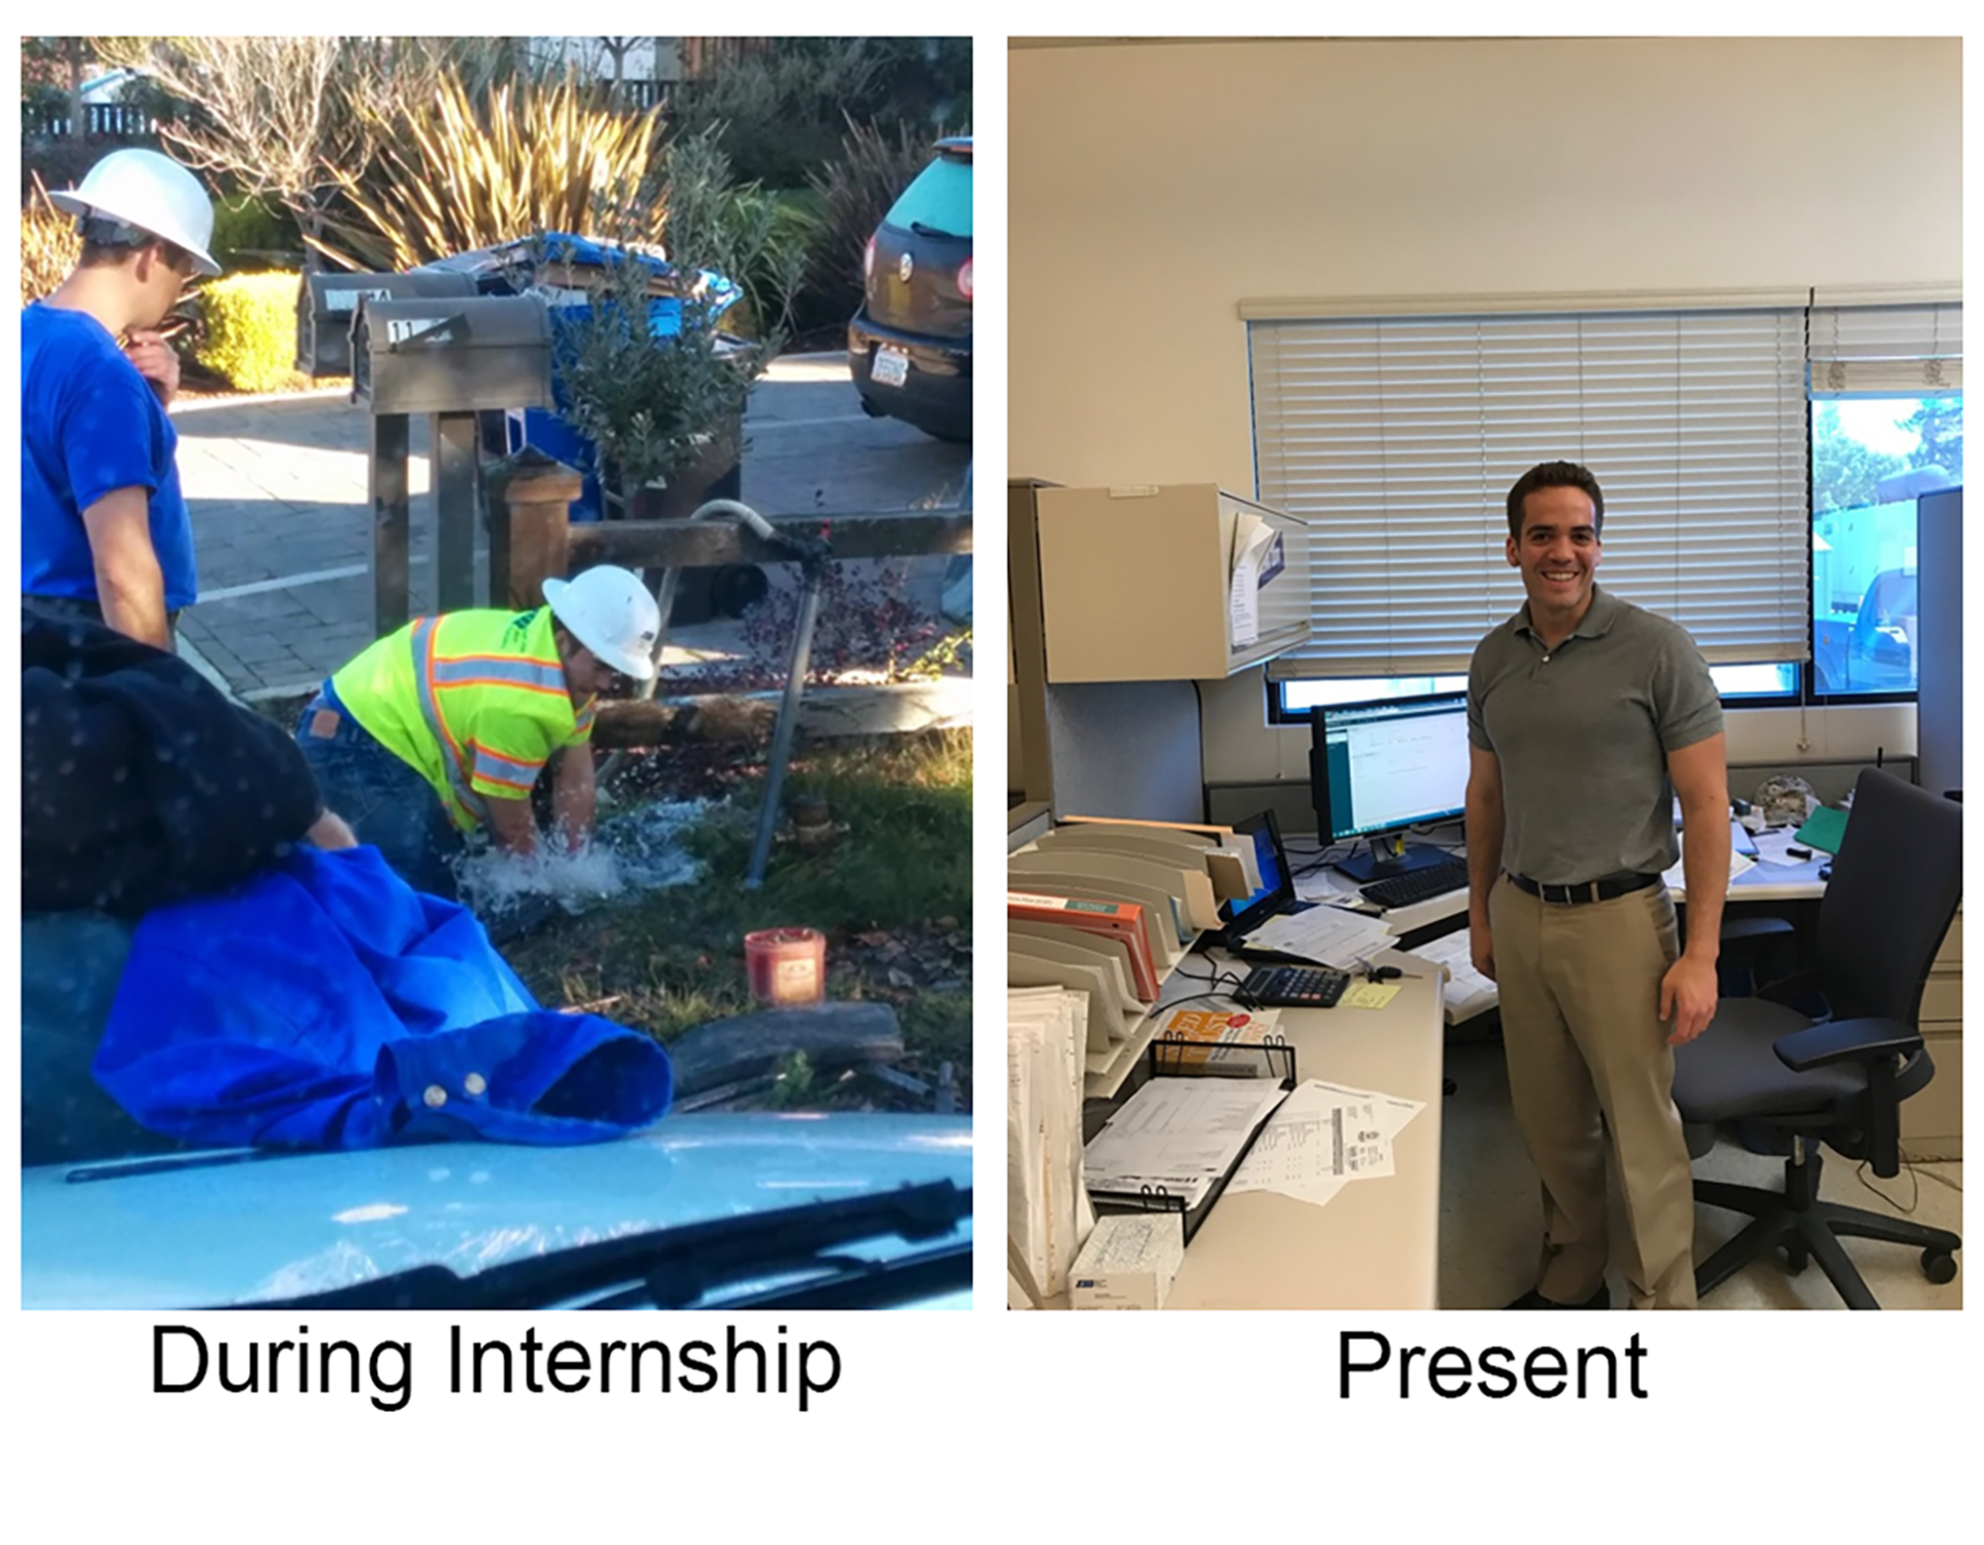 before and after internship